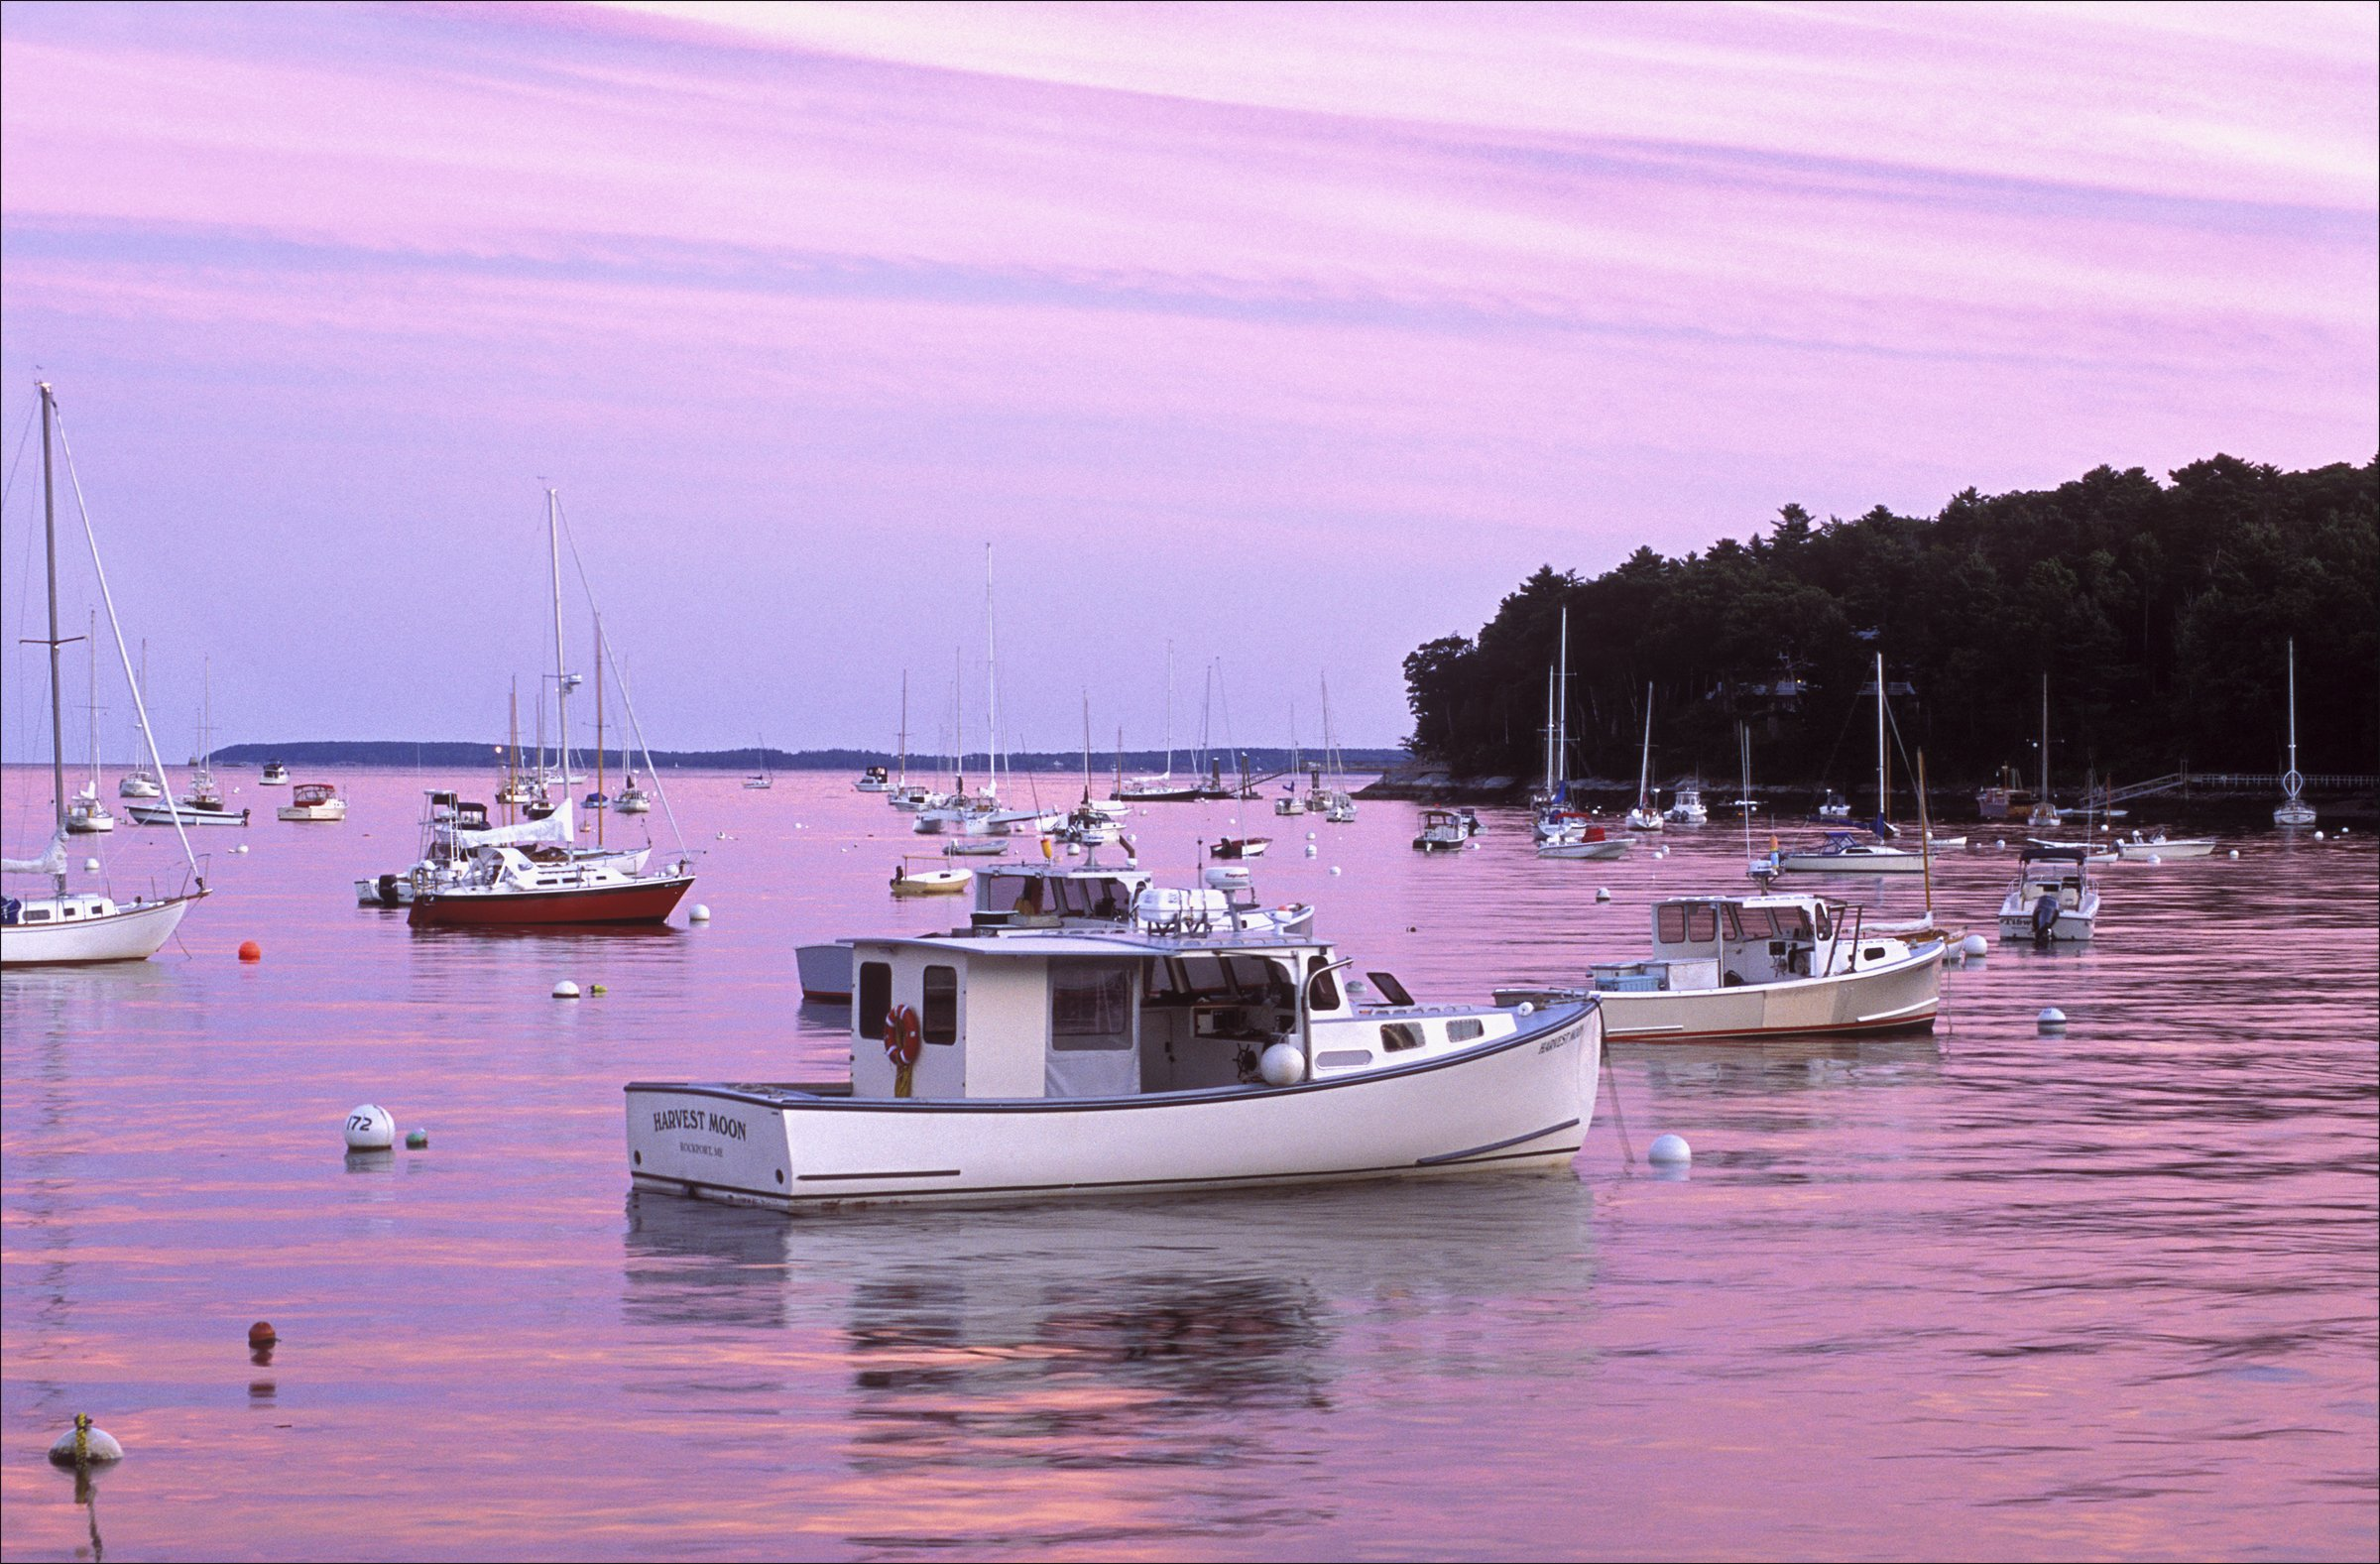 Take a sail on one of the schooners or go hiking. Visit Nearby Rockland and be surprised by the art produced in this area. You can easily spend a week and fall in love with the area